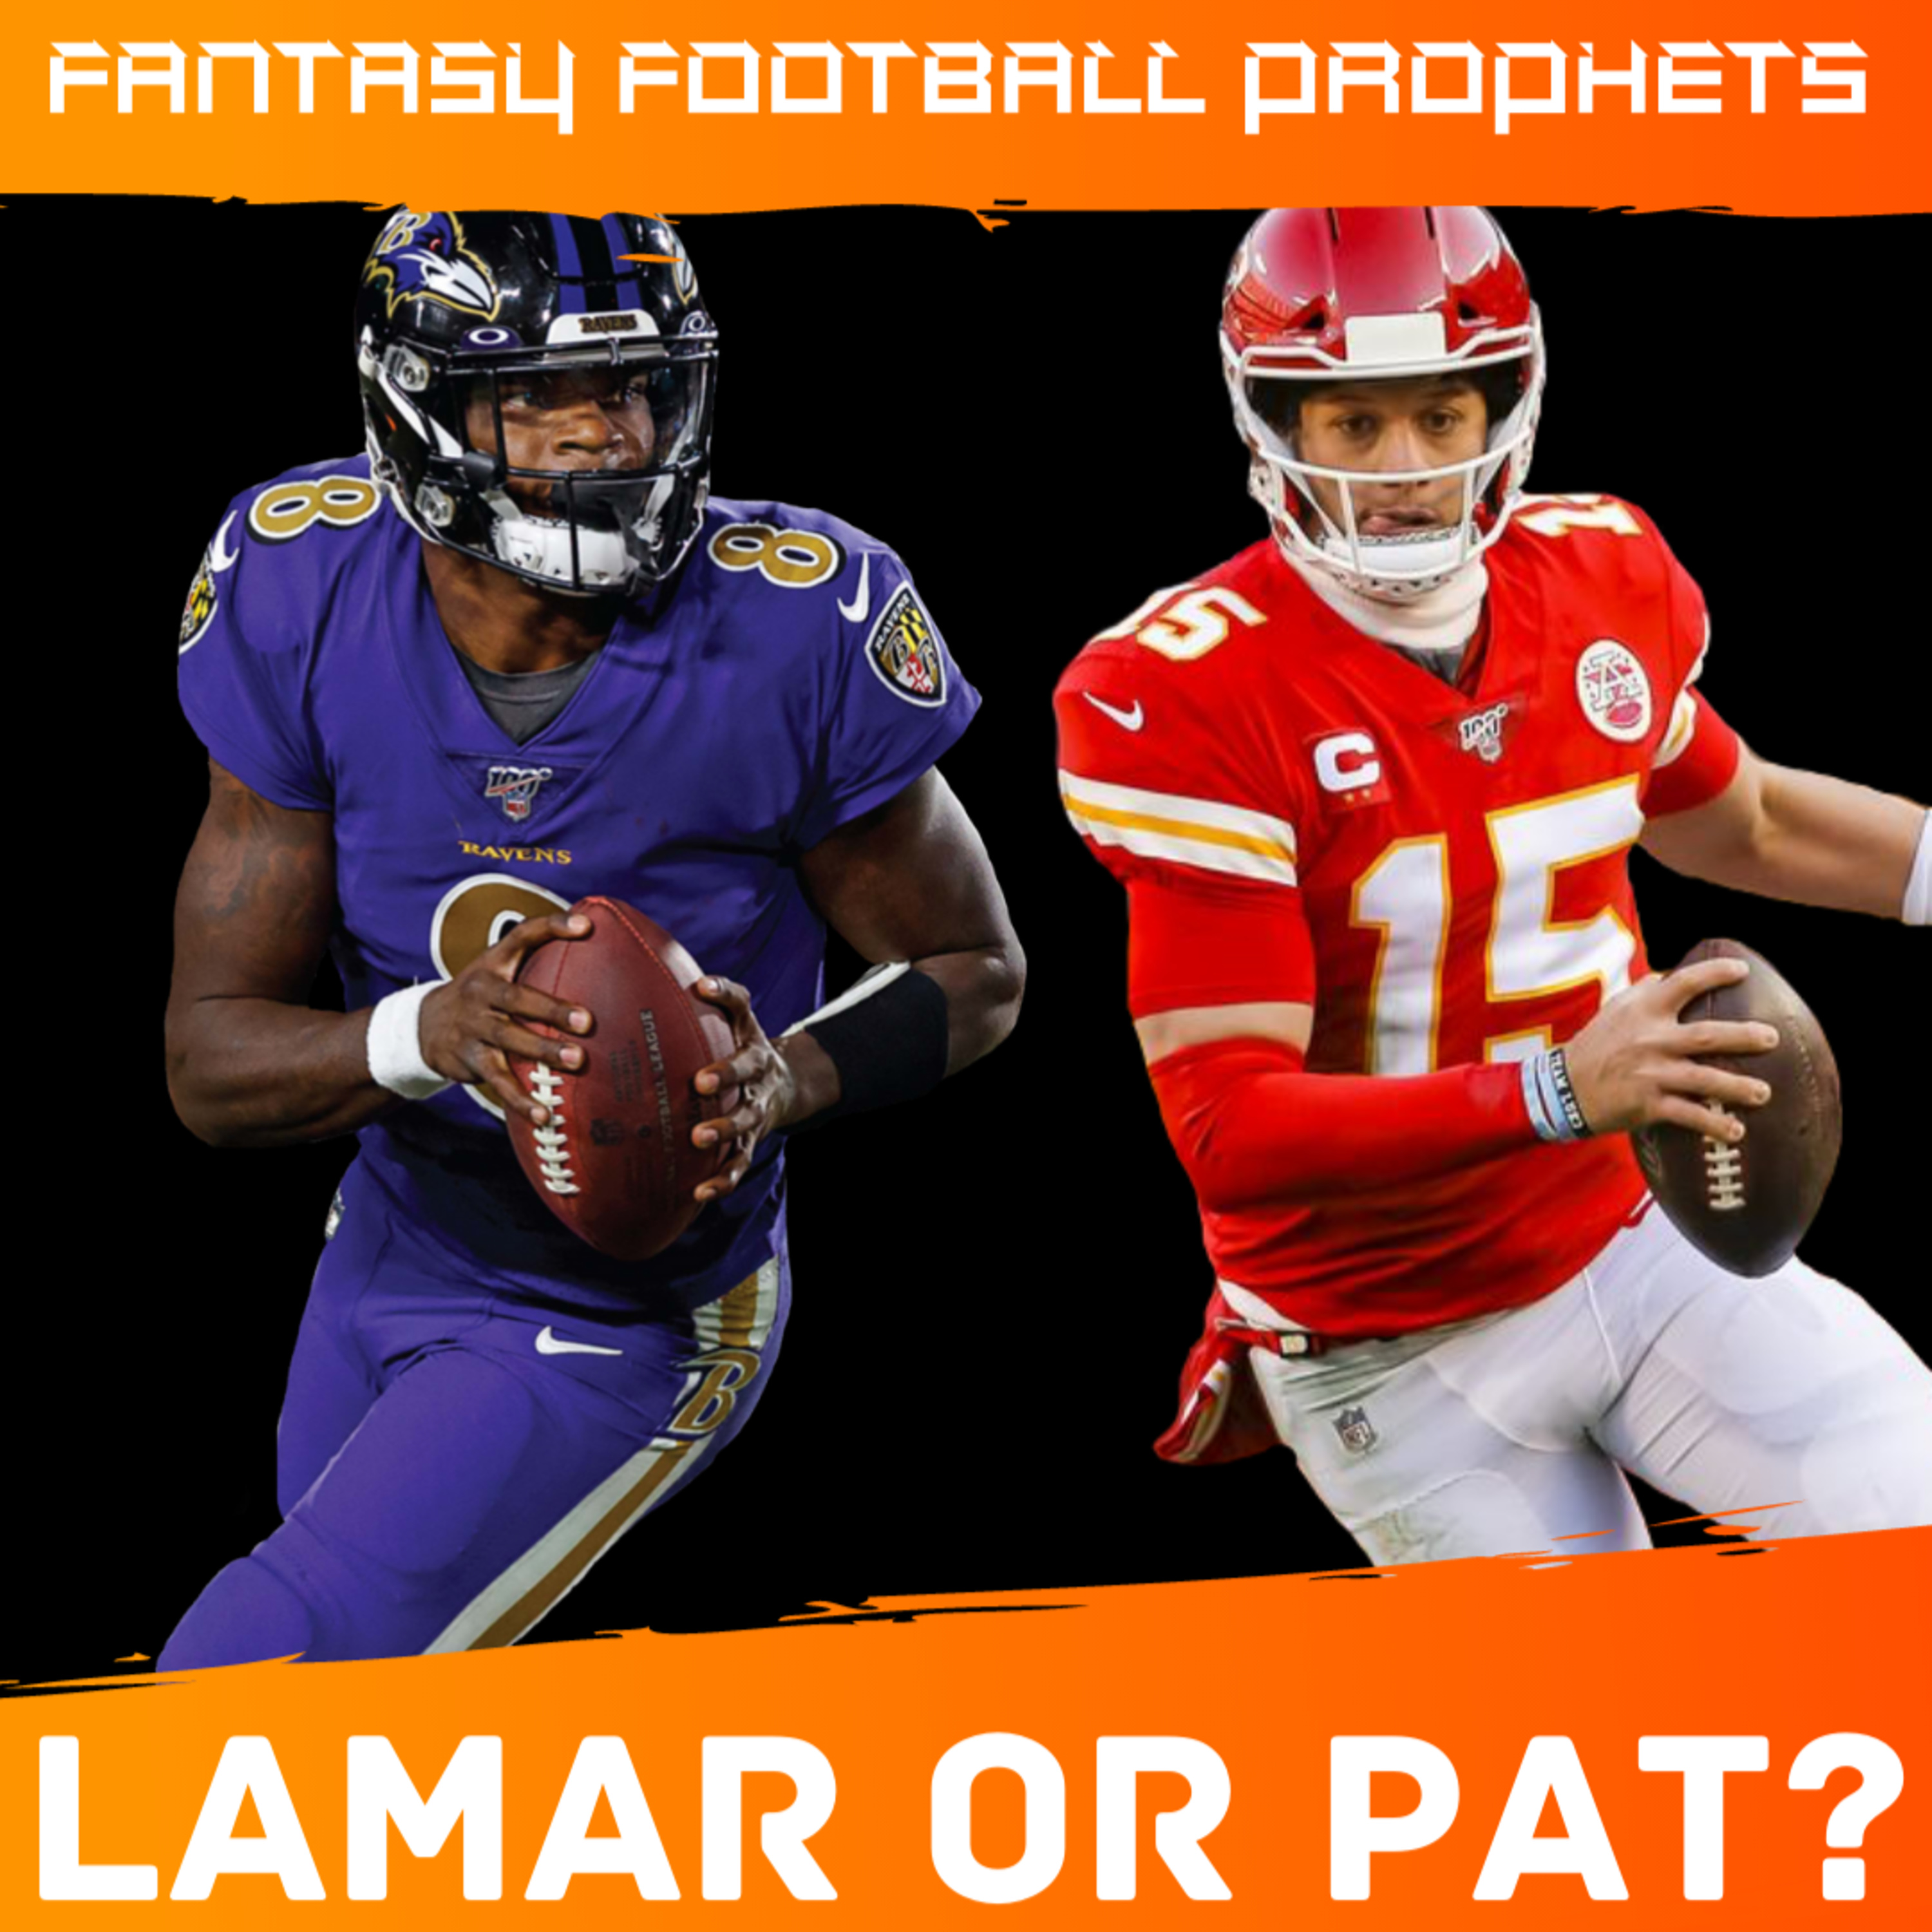 Who Is The Better Fantasy QB? Mahomes VS Lamar The NFL's Best Rivalry | Fantasy Football Prophets